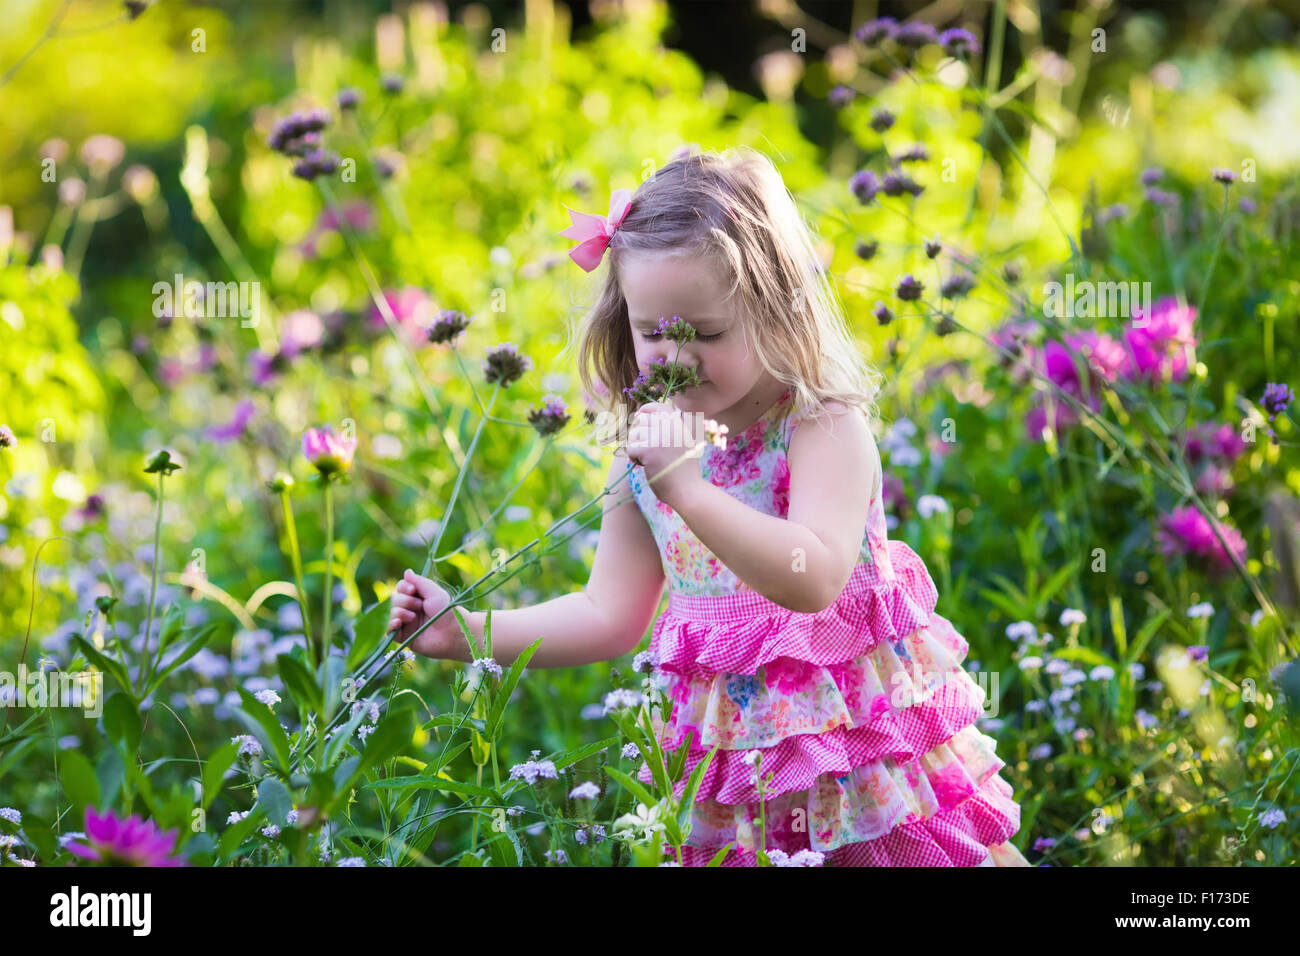 Little girl playing with flowers in the garden kids play outdoors little girl playing with flowers in the garden kids play outdoors in summer children gardening child planting flower mightylinksfo